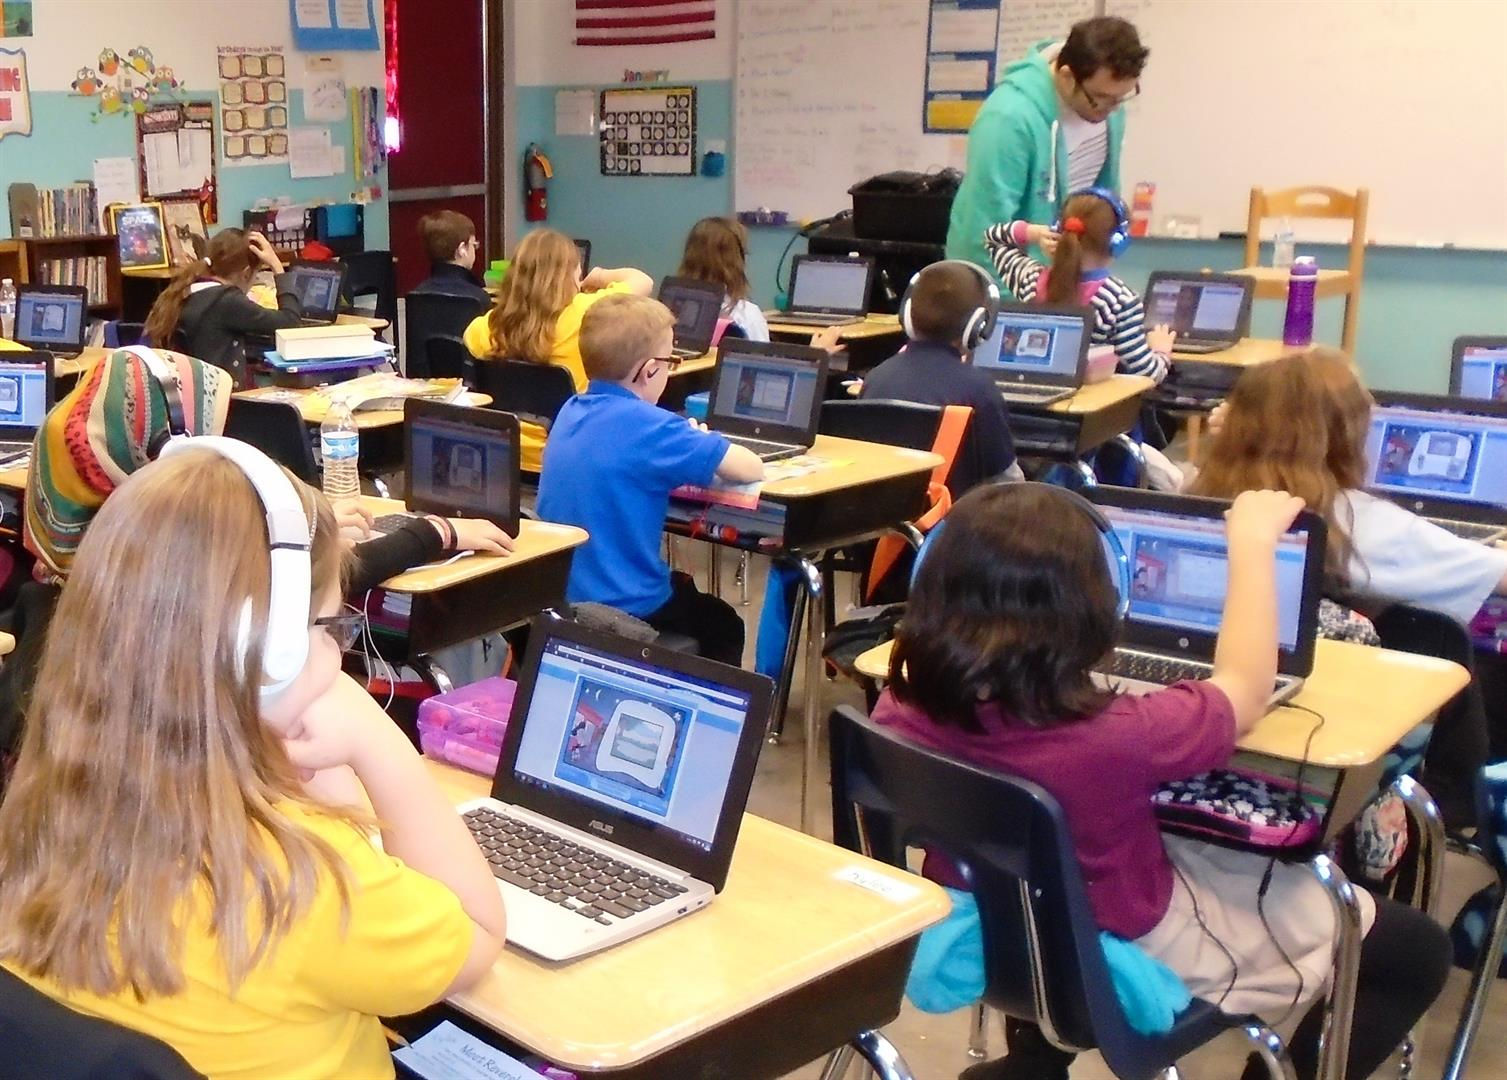 Children in headphones at computers